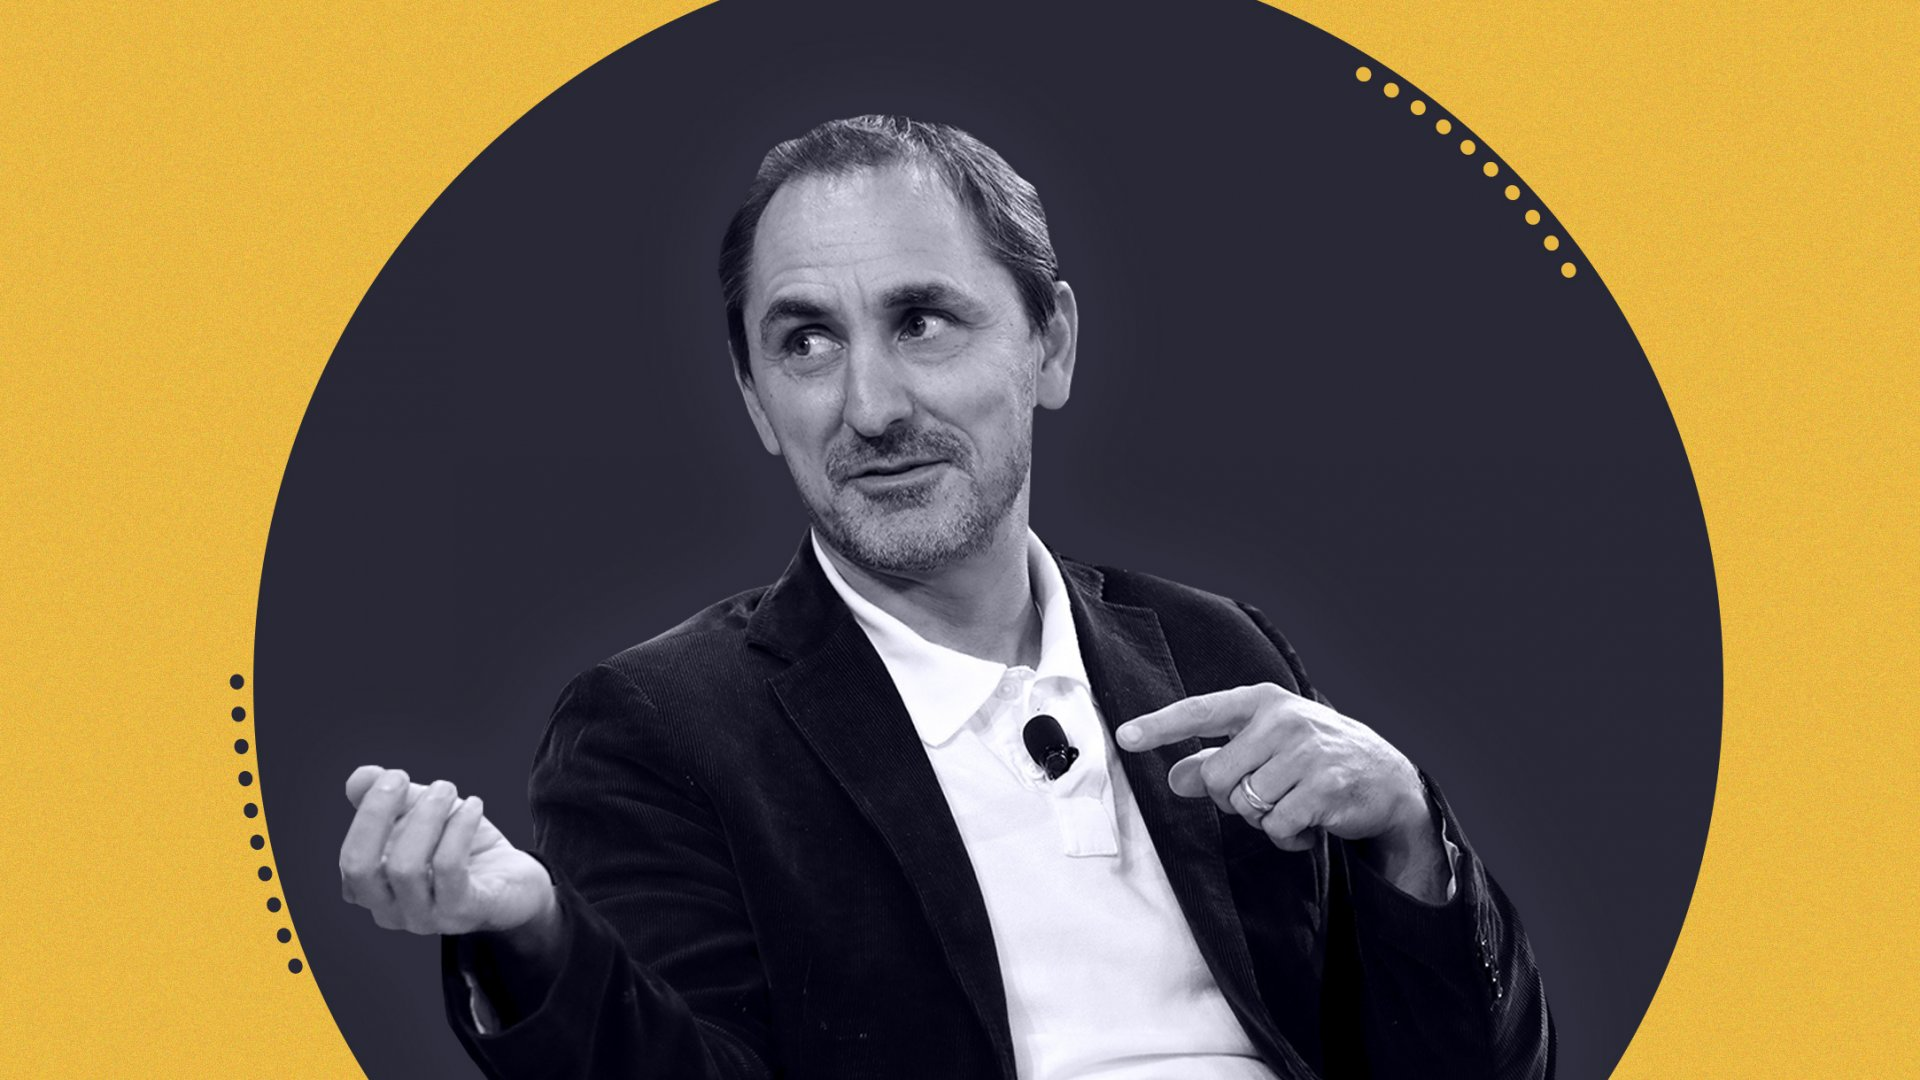 Watch: David Droga on Advertising During a Pandemic